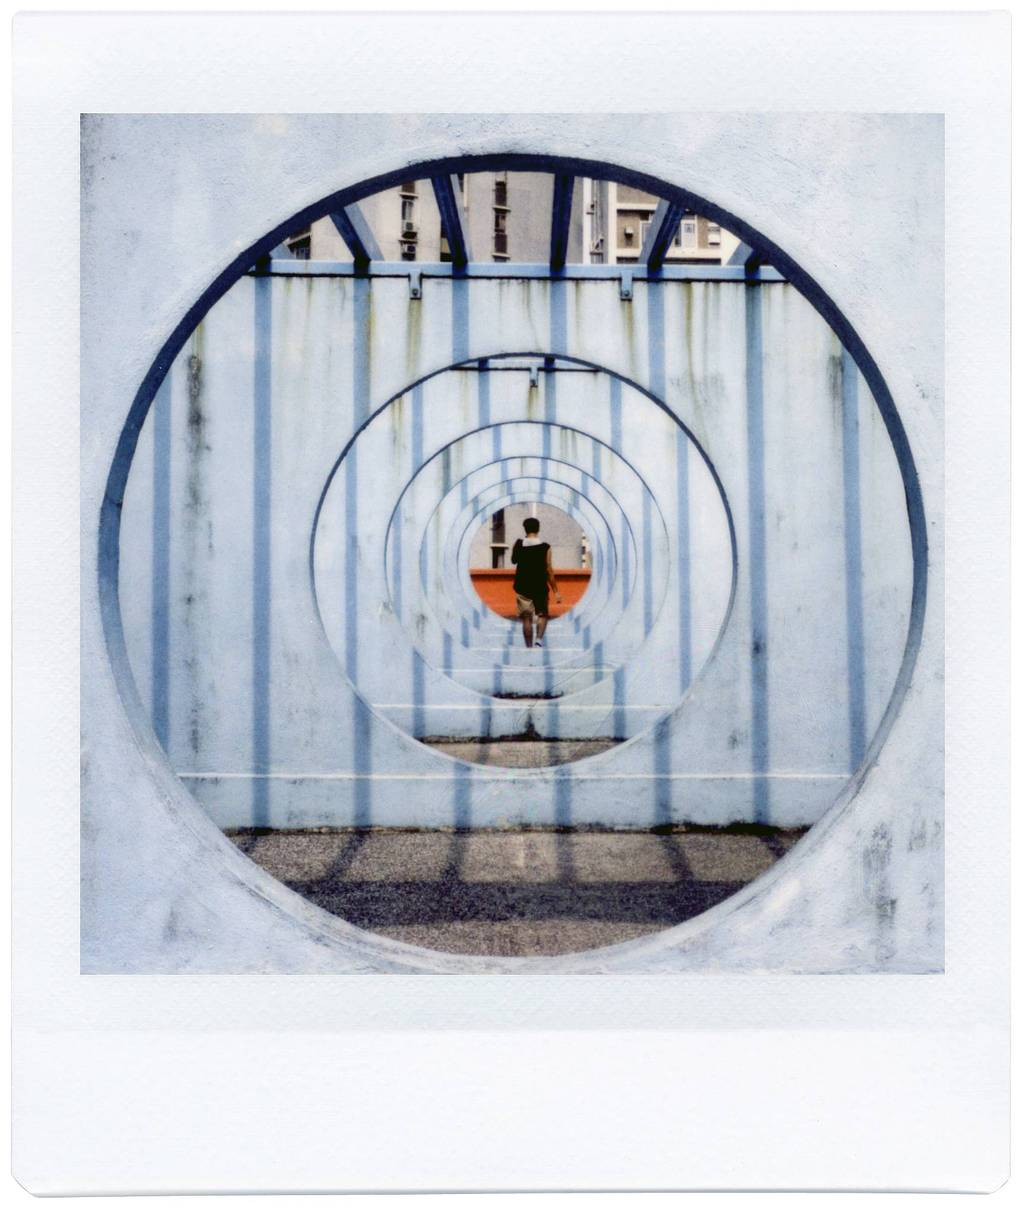 Instant Photography: Now or Never Award